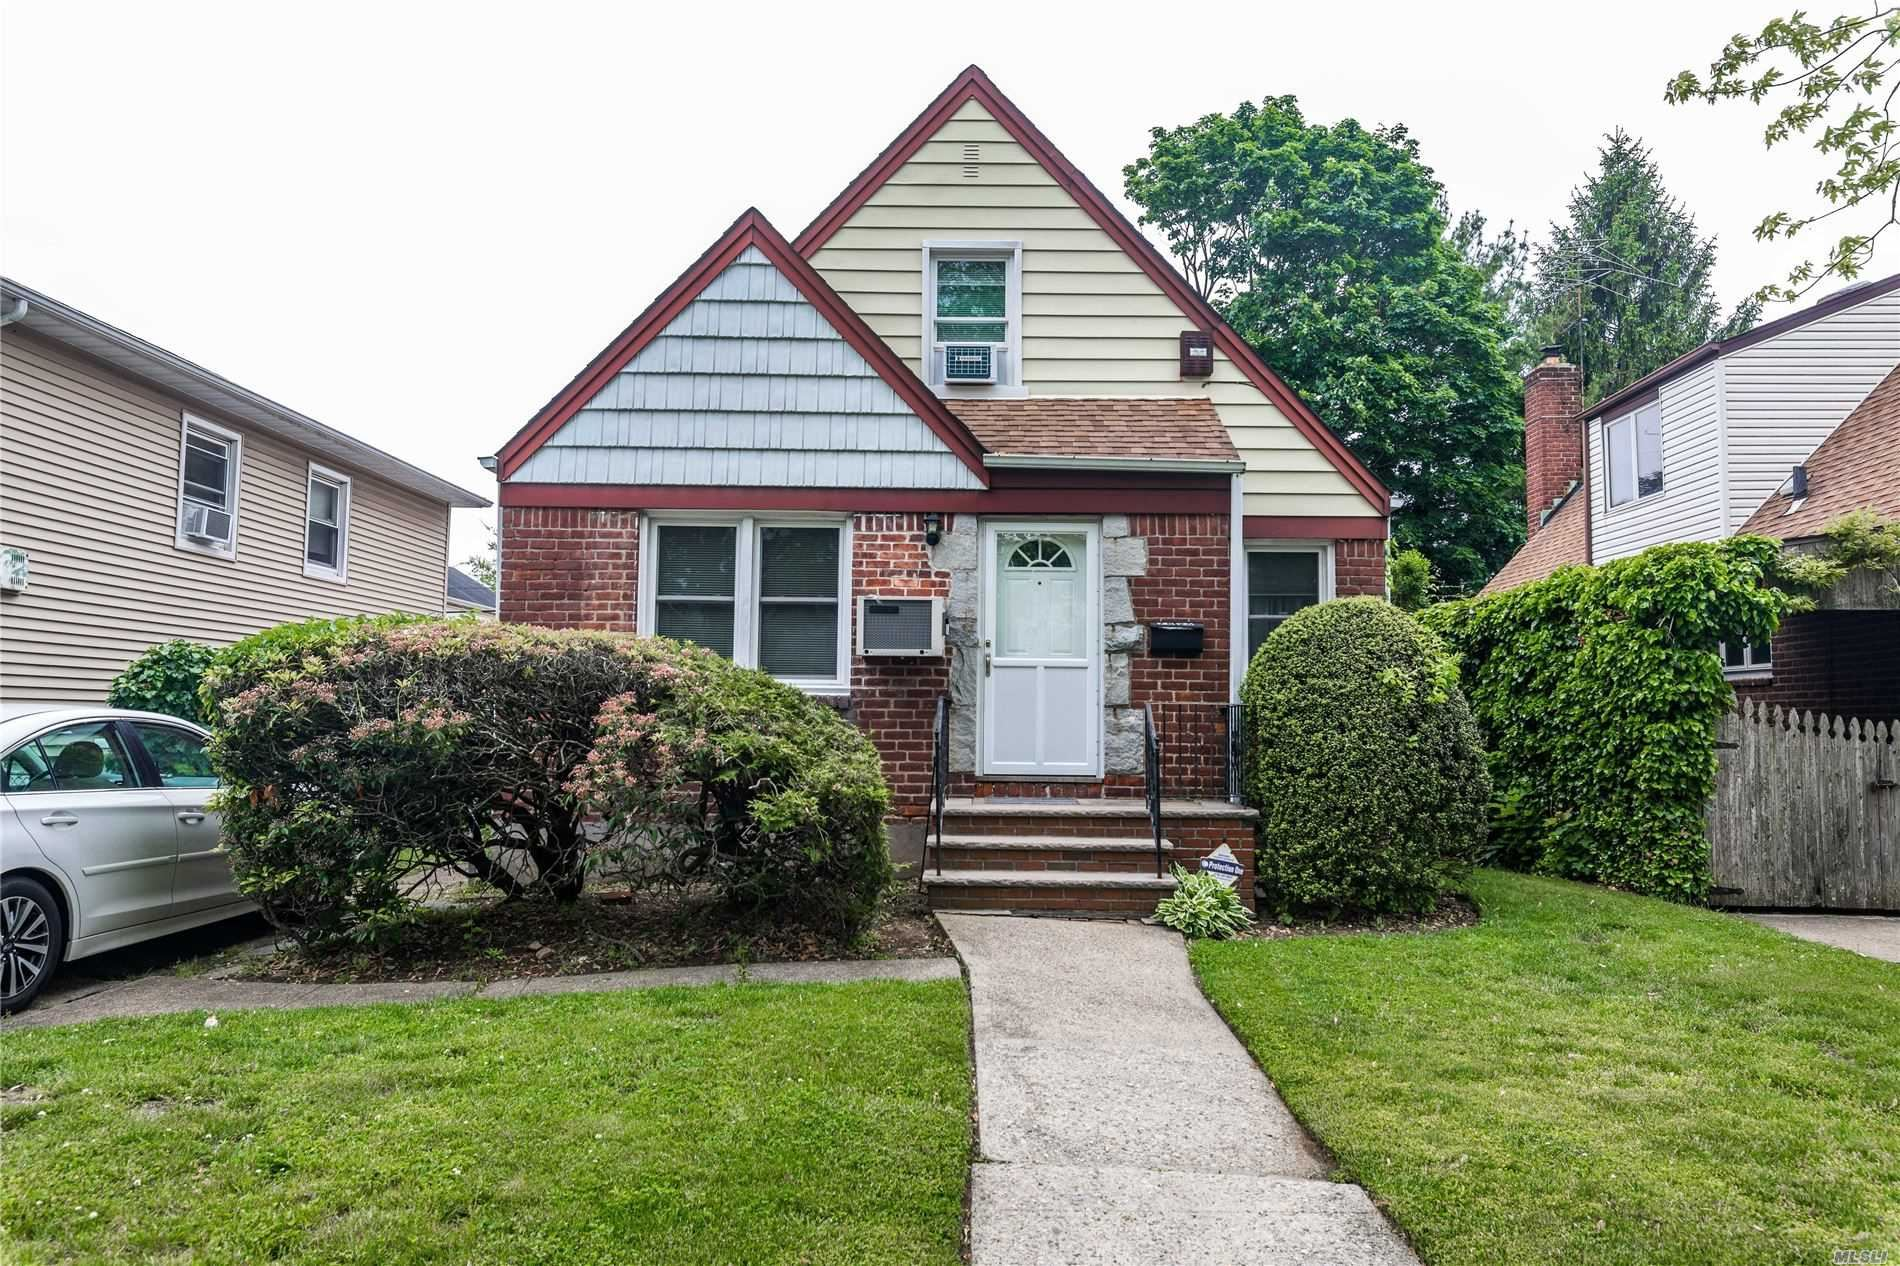 78-26 267th St, Floral Park, NY 11004 - MLS#: 3218888